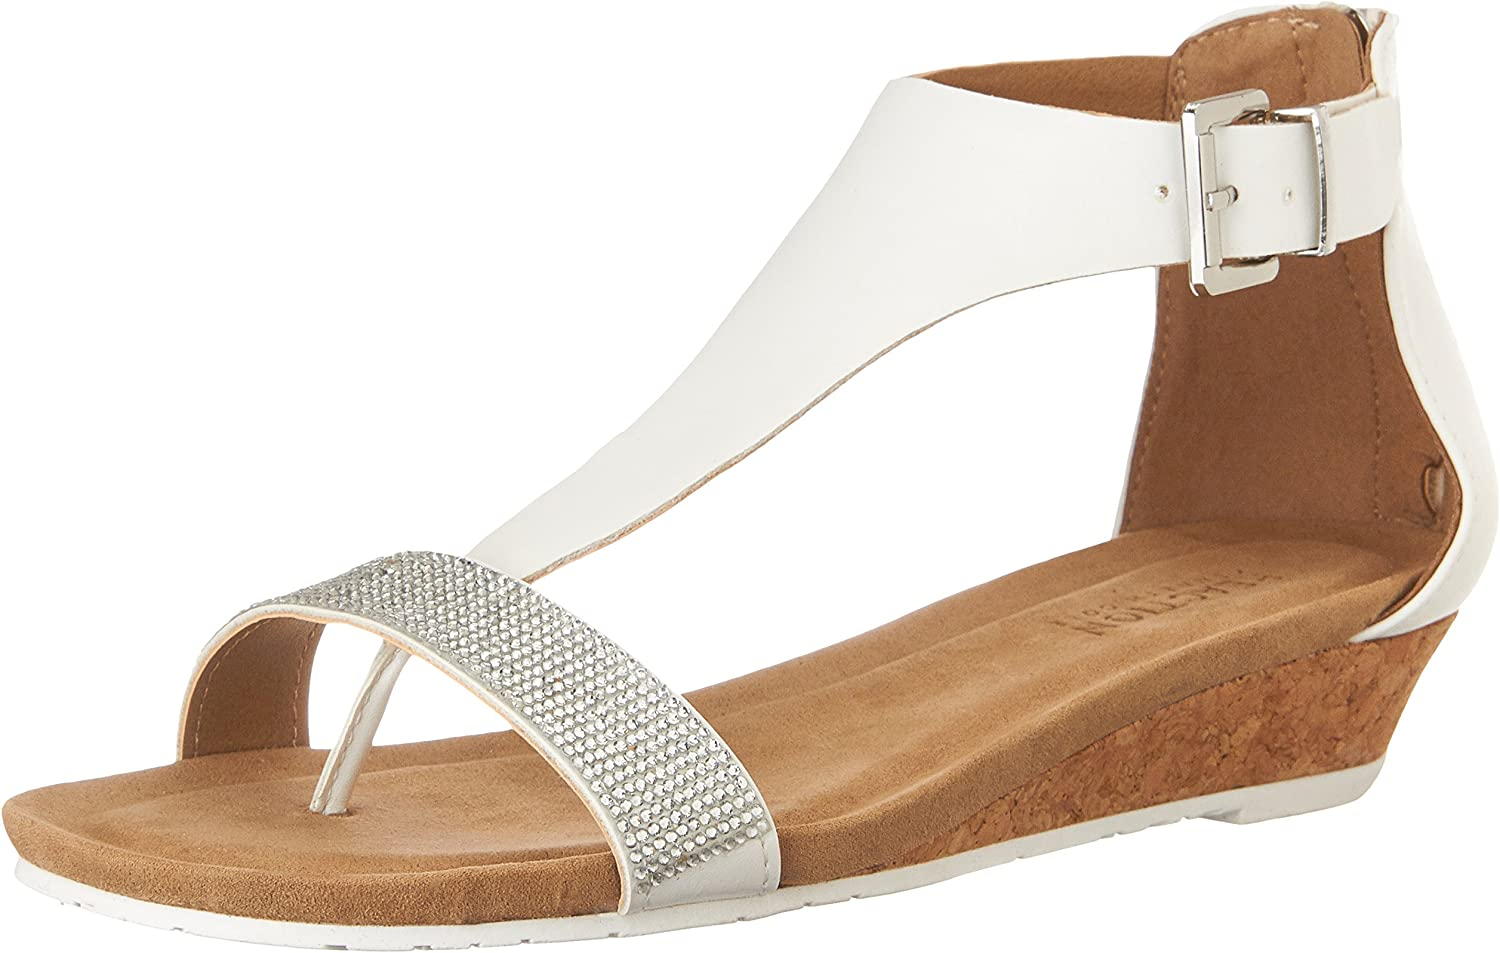 315d924f62e save up to 70% discount,Kenneth Cole Beaded Sandal Wedge 2 Gal Great ...